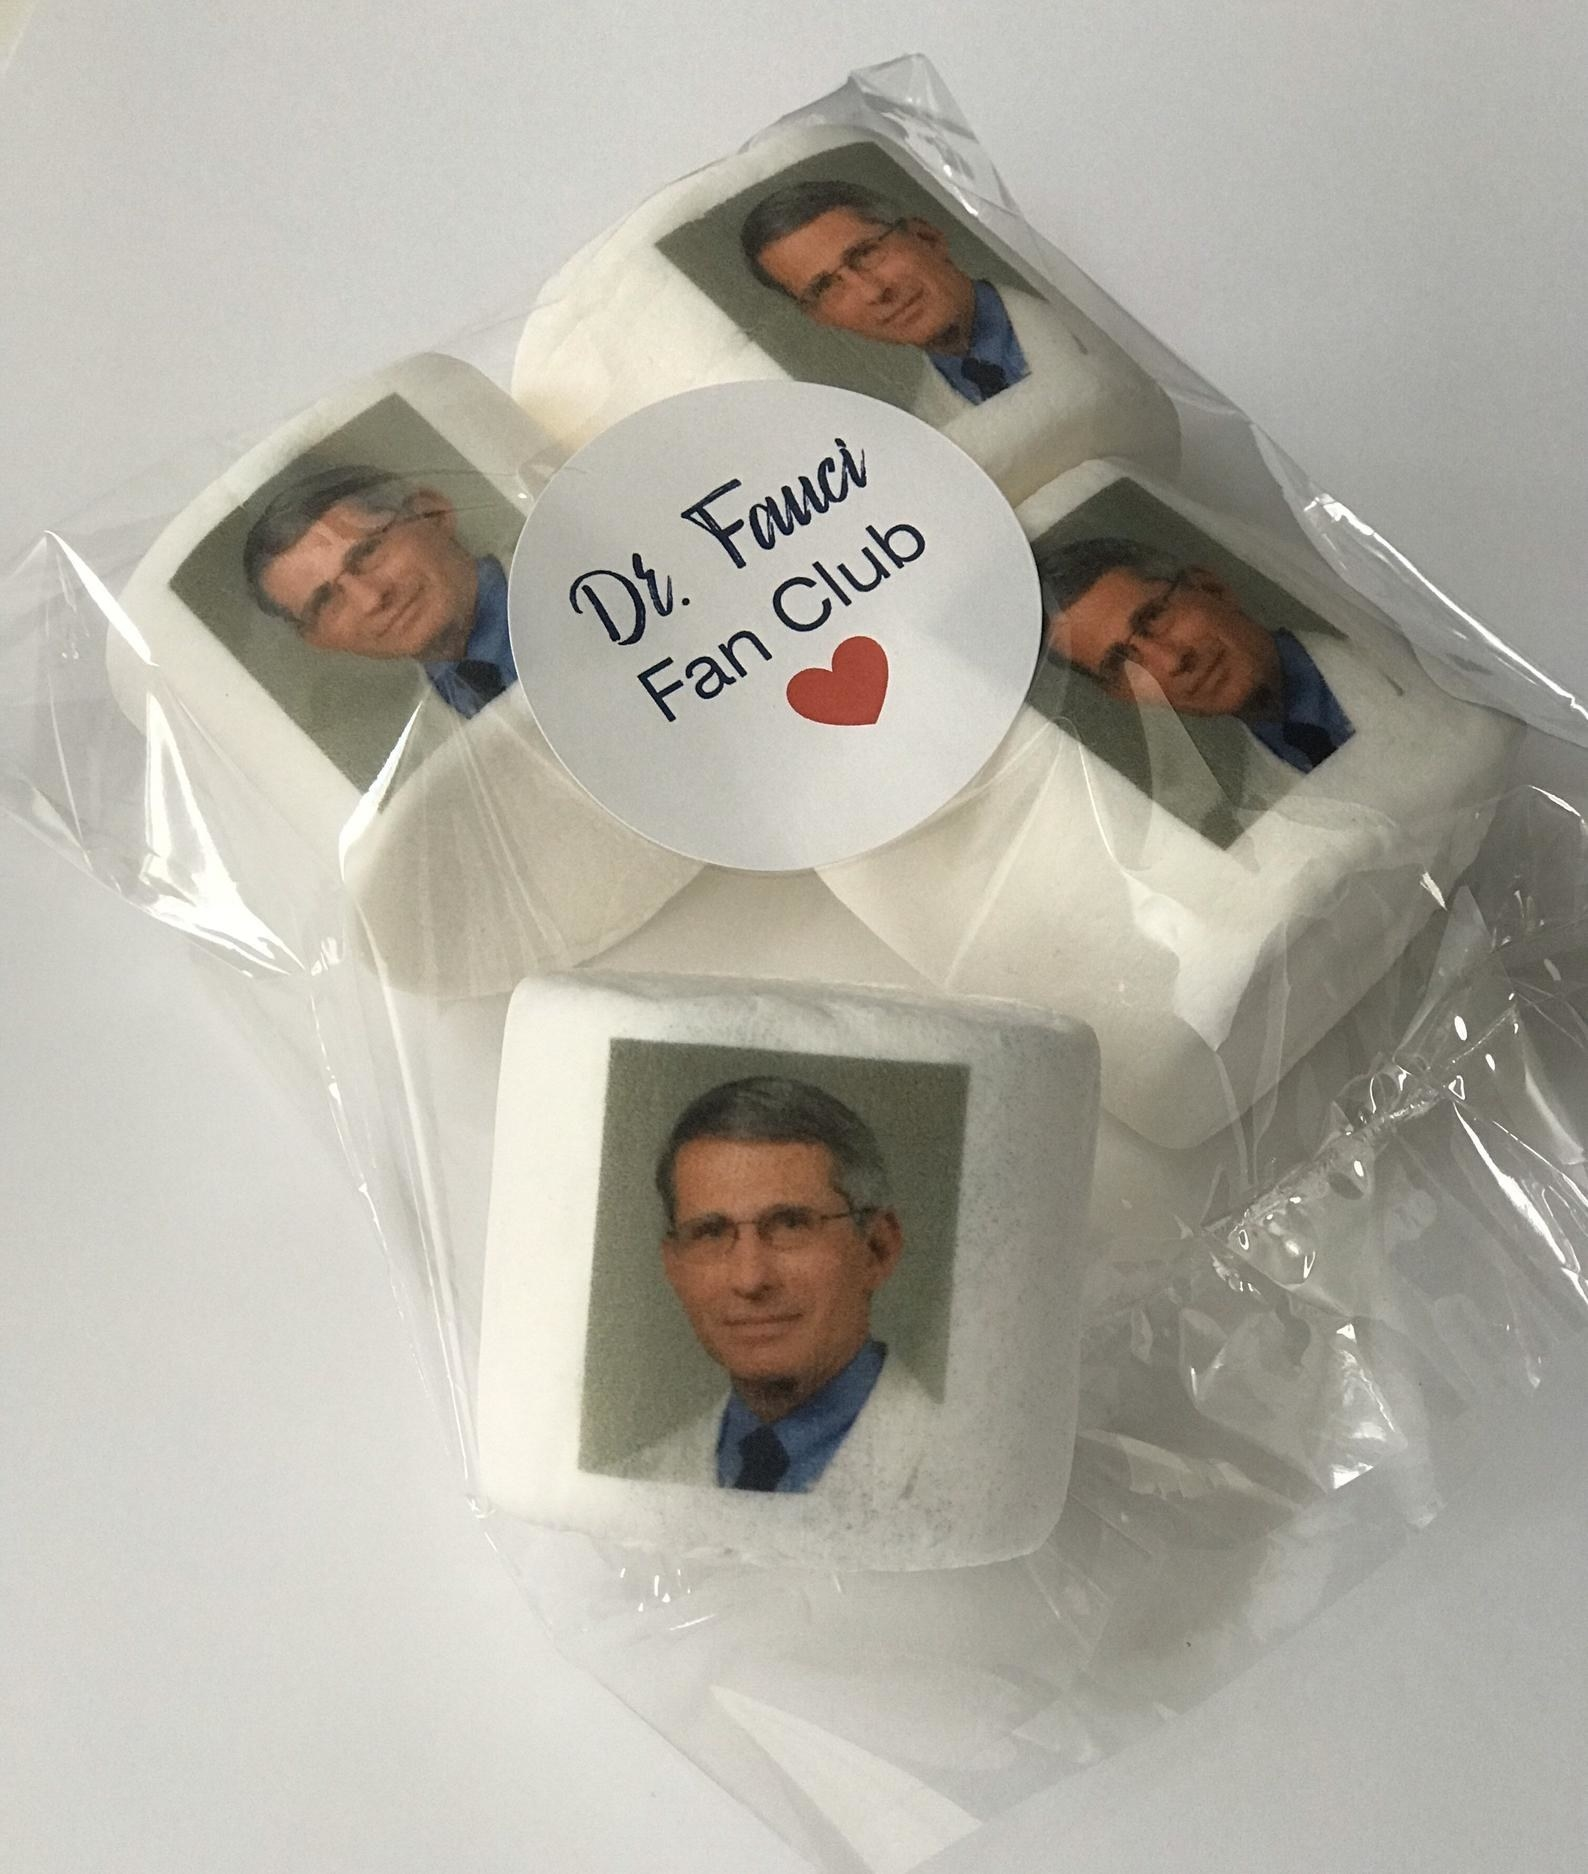 the big marshmallows with dr. fauci on them